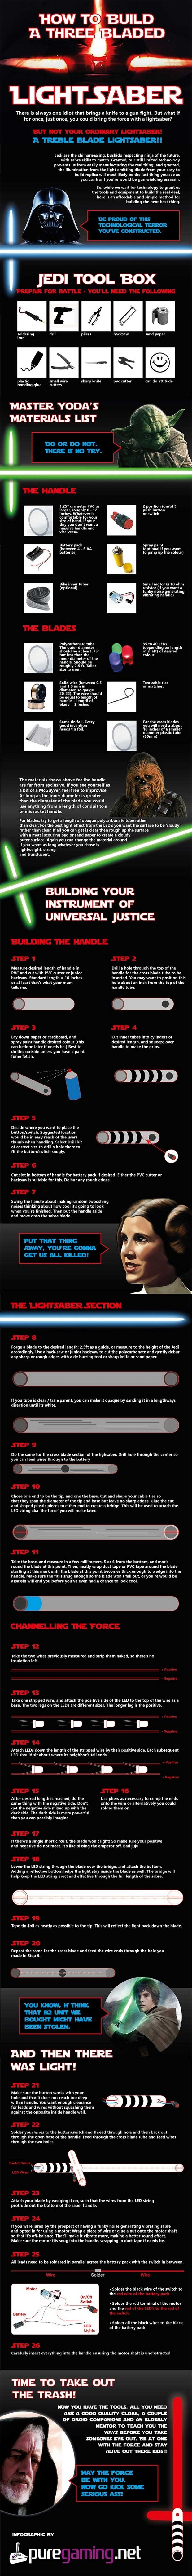 three_blade_lightsaber_infographic_2